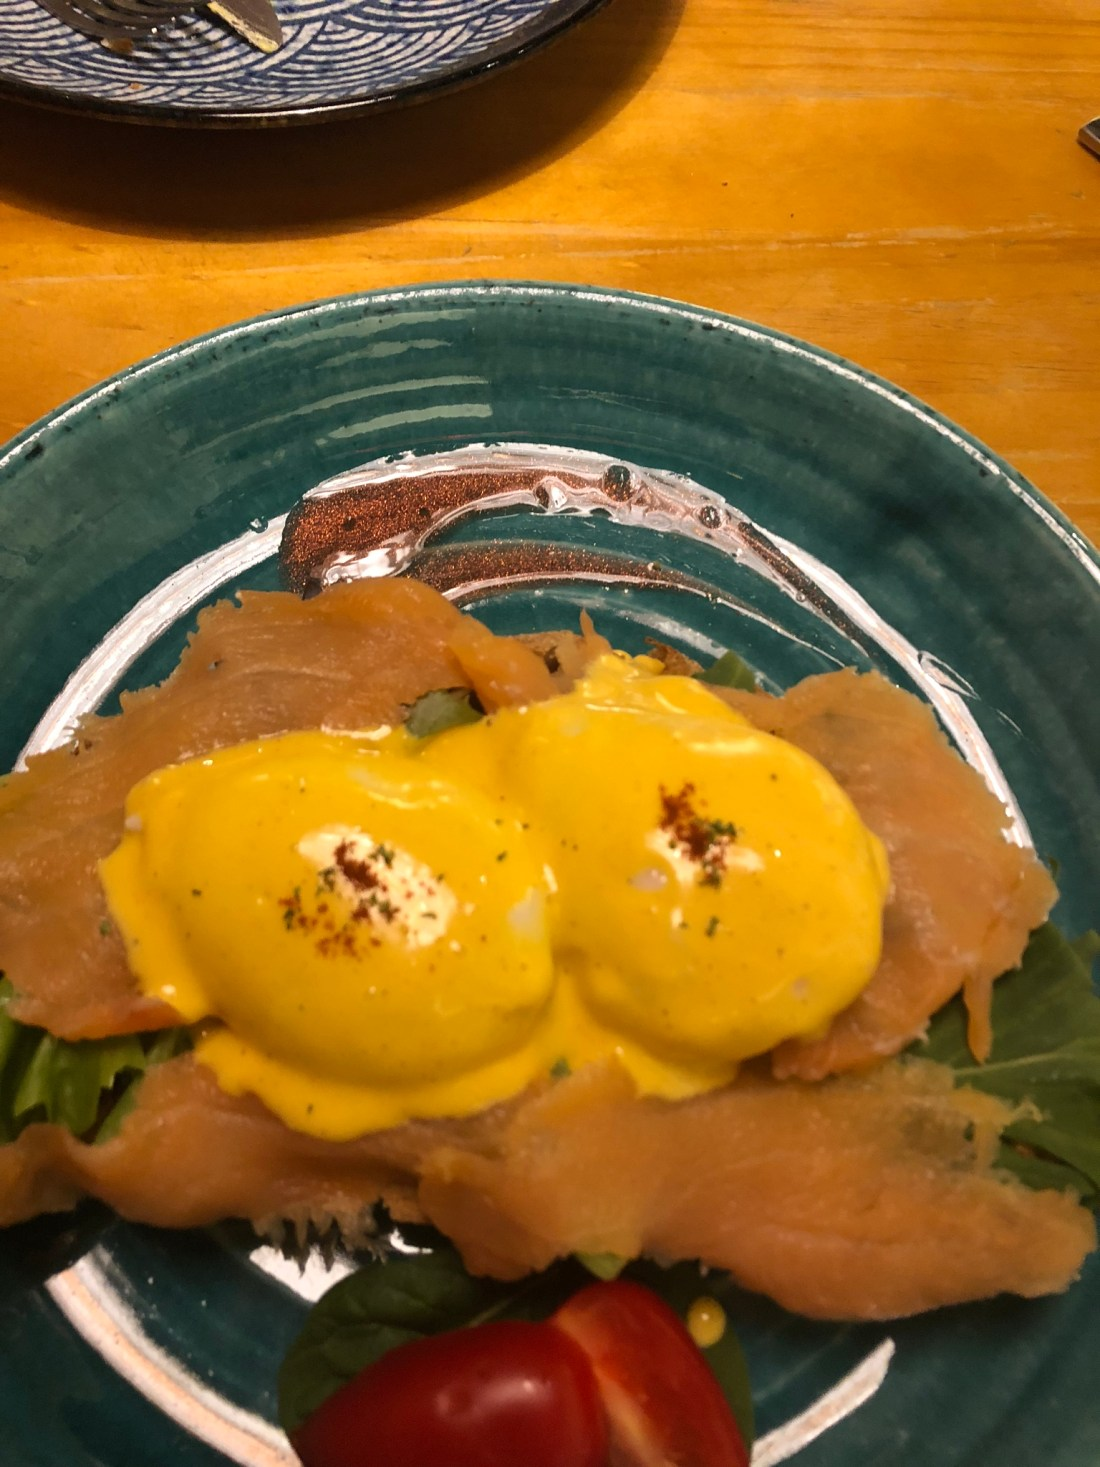 Eggs benedict from Black Sugar Coffee and Lifestyle, Kowloon